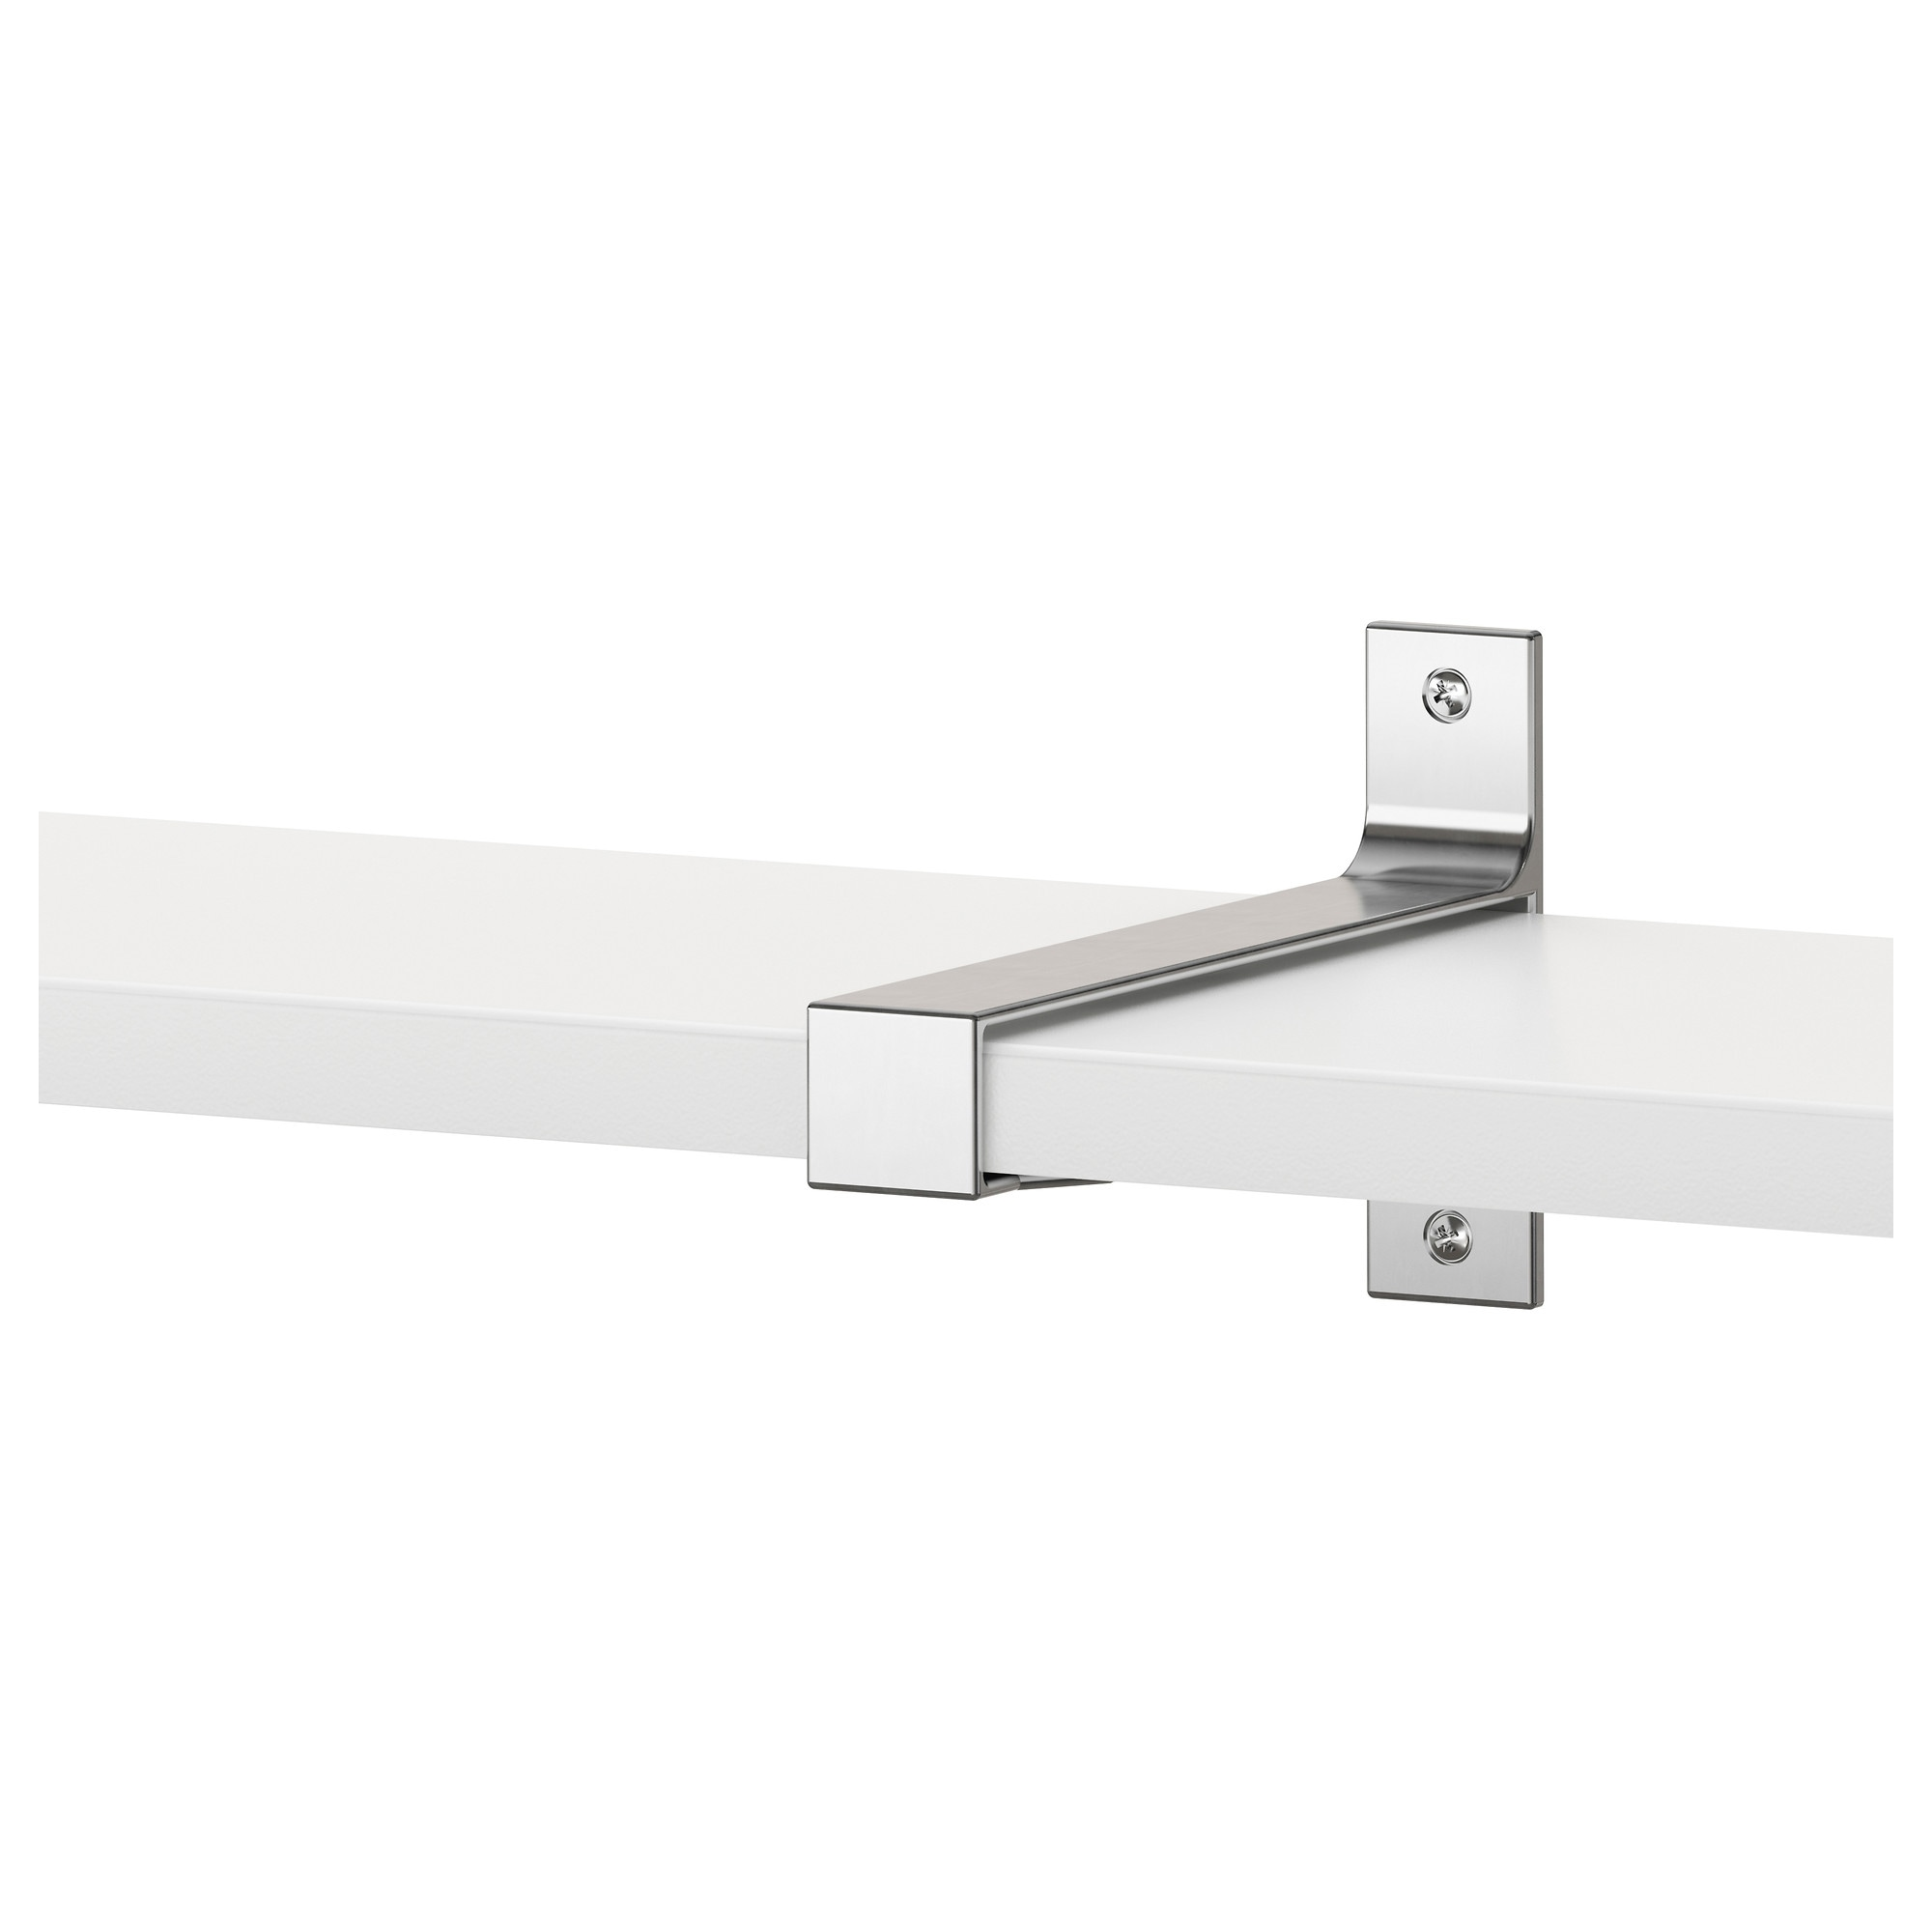 Uncategorized Bracket For Shelf ekby connecting bracket 7 ikea